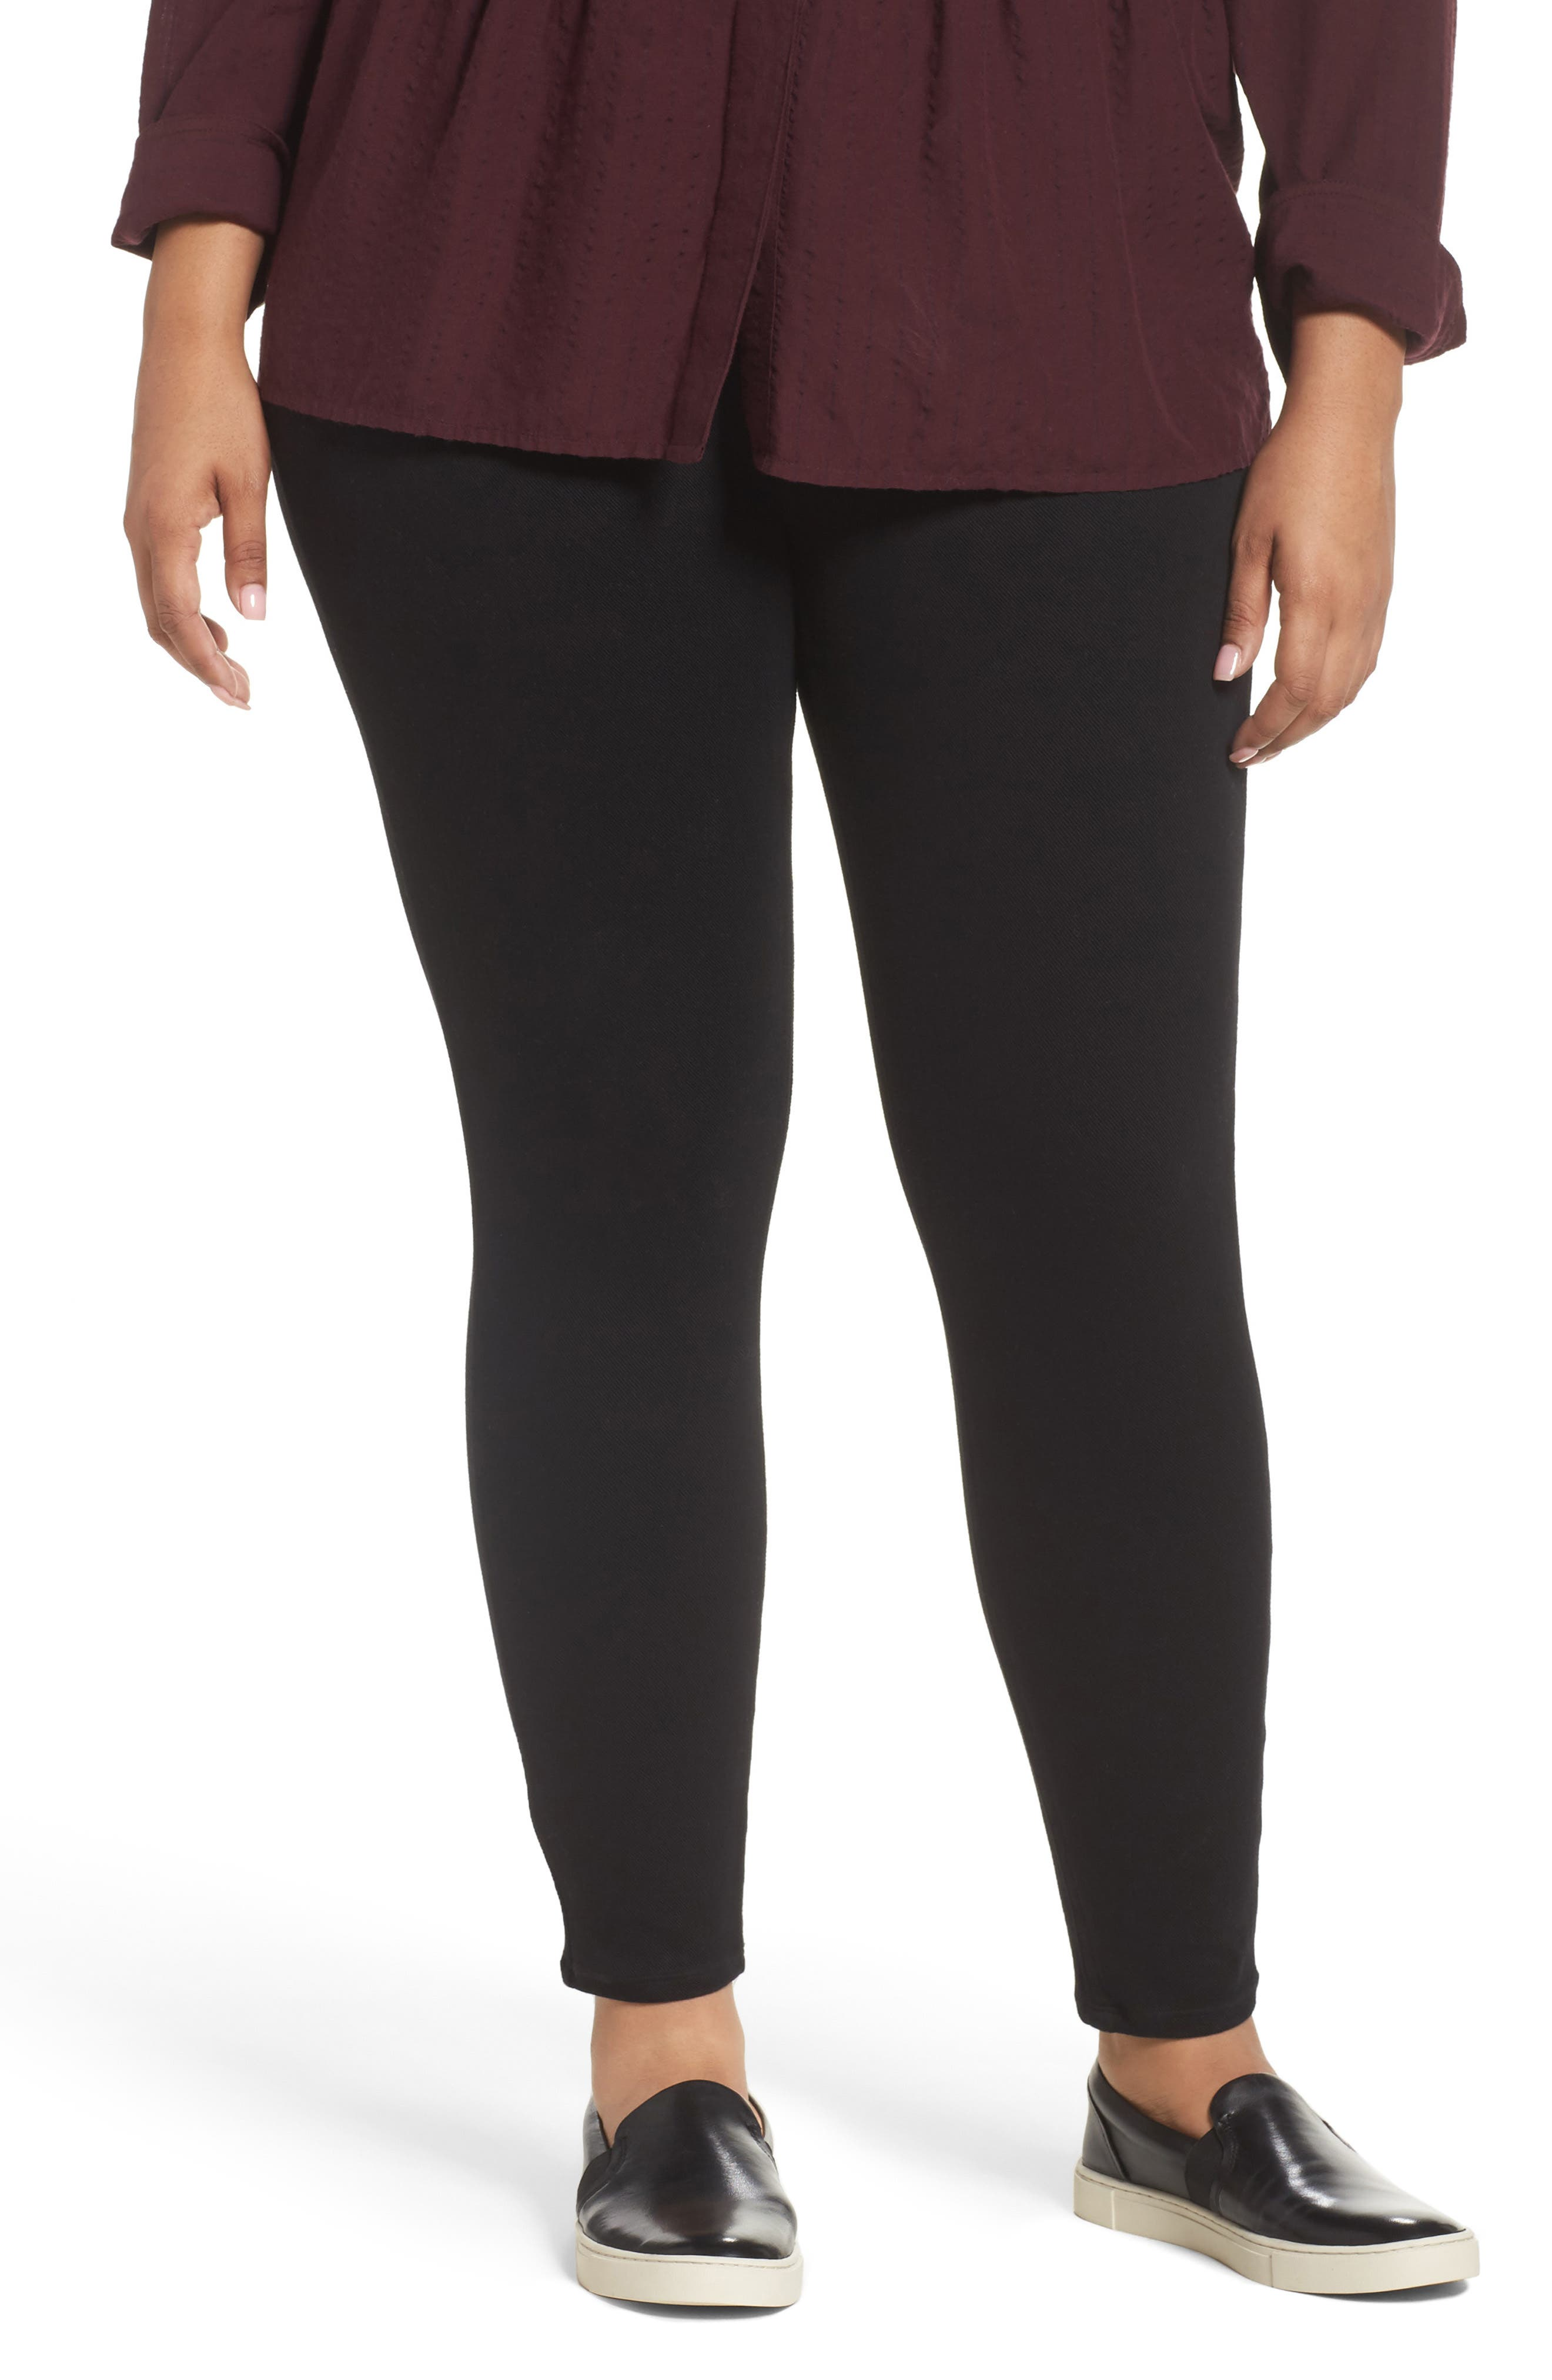 Main Image - SPANX® Jean-ish Leggings (Plus Size)